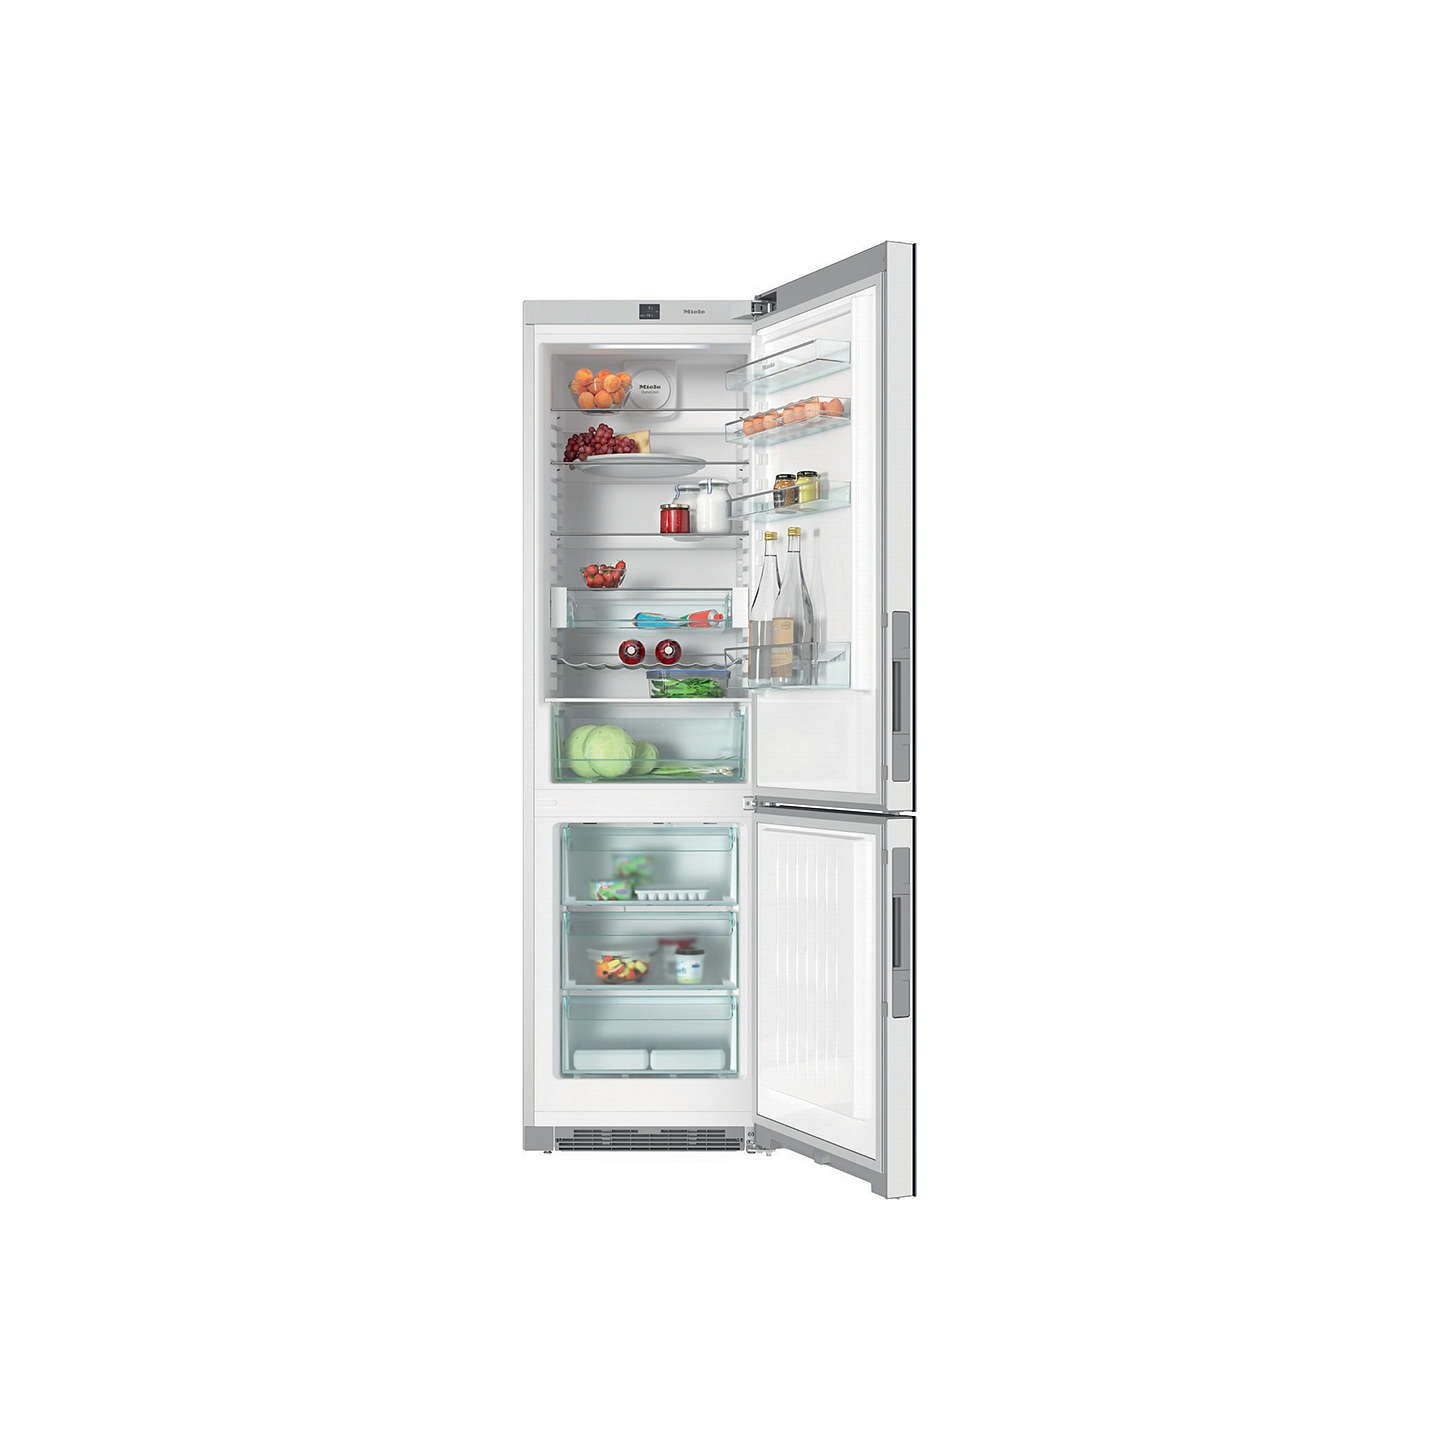 BuyMiele KFN 29233 D BB EFR Fridge Freezer, A+++ Energy Rating, 60cm Wide, Blackboard Edition Online at johnlewis.com